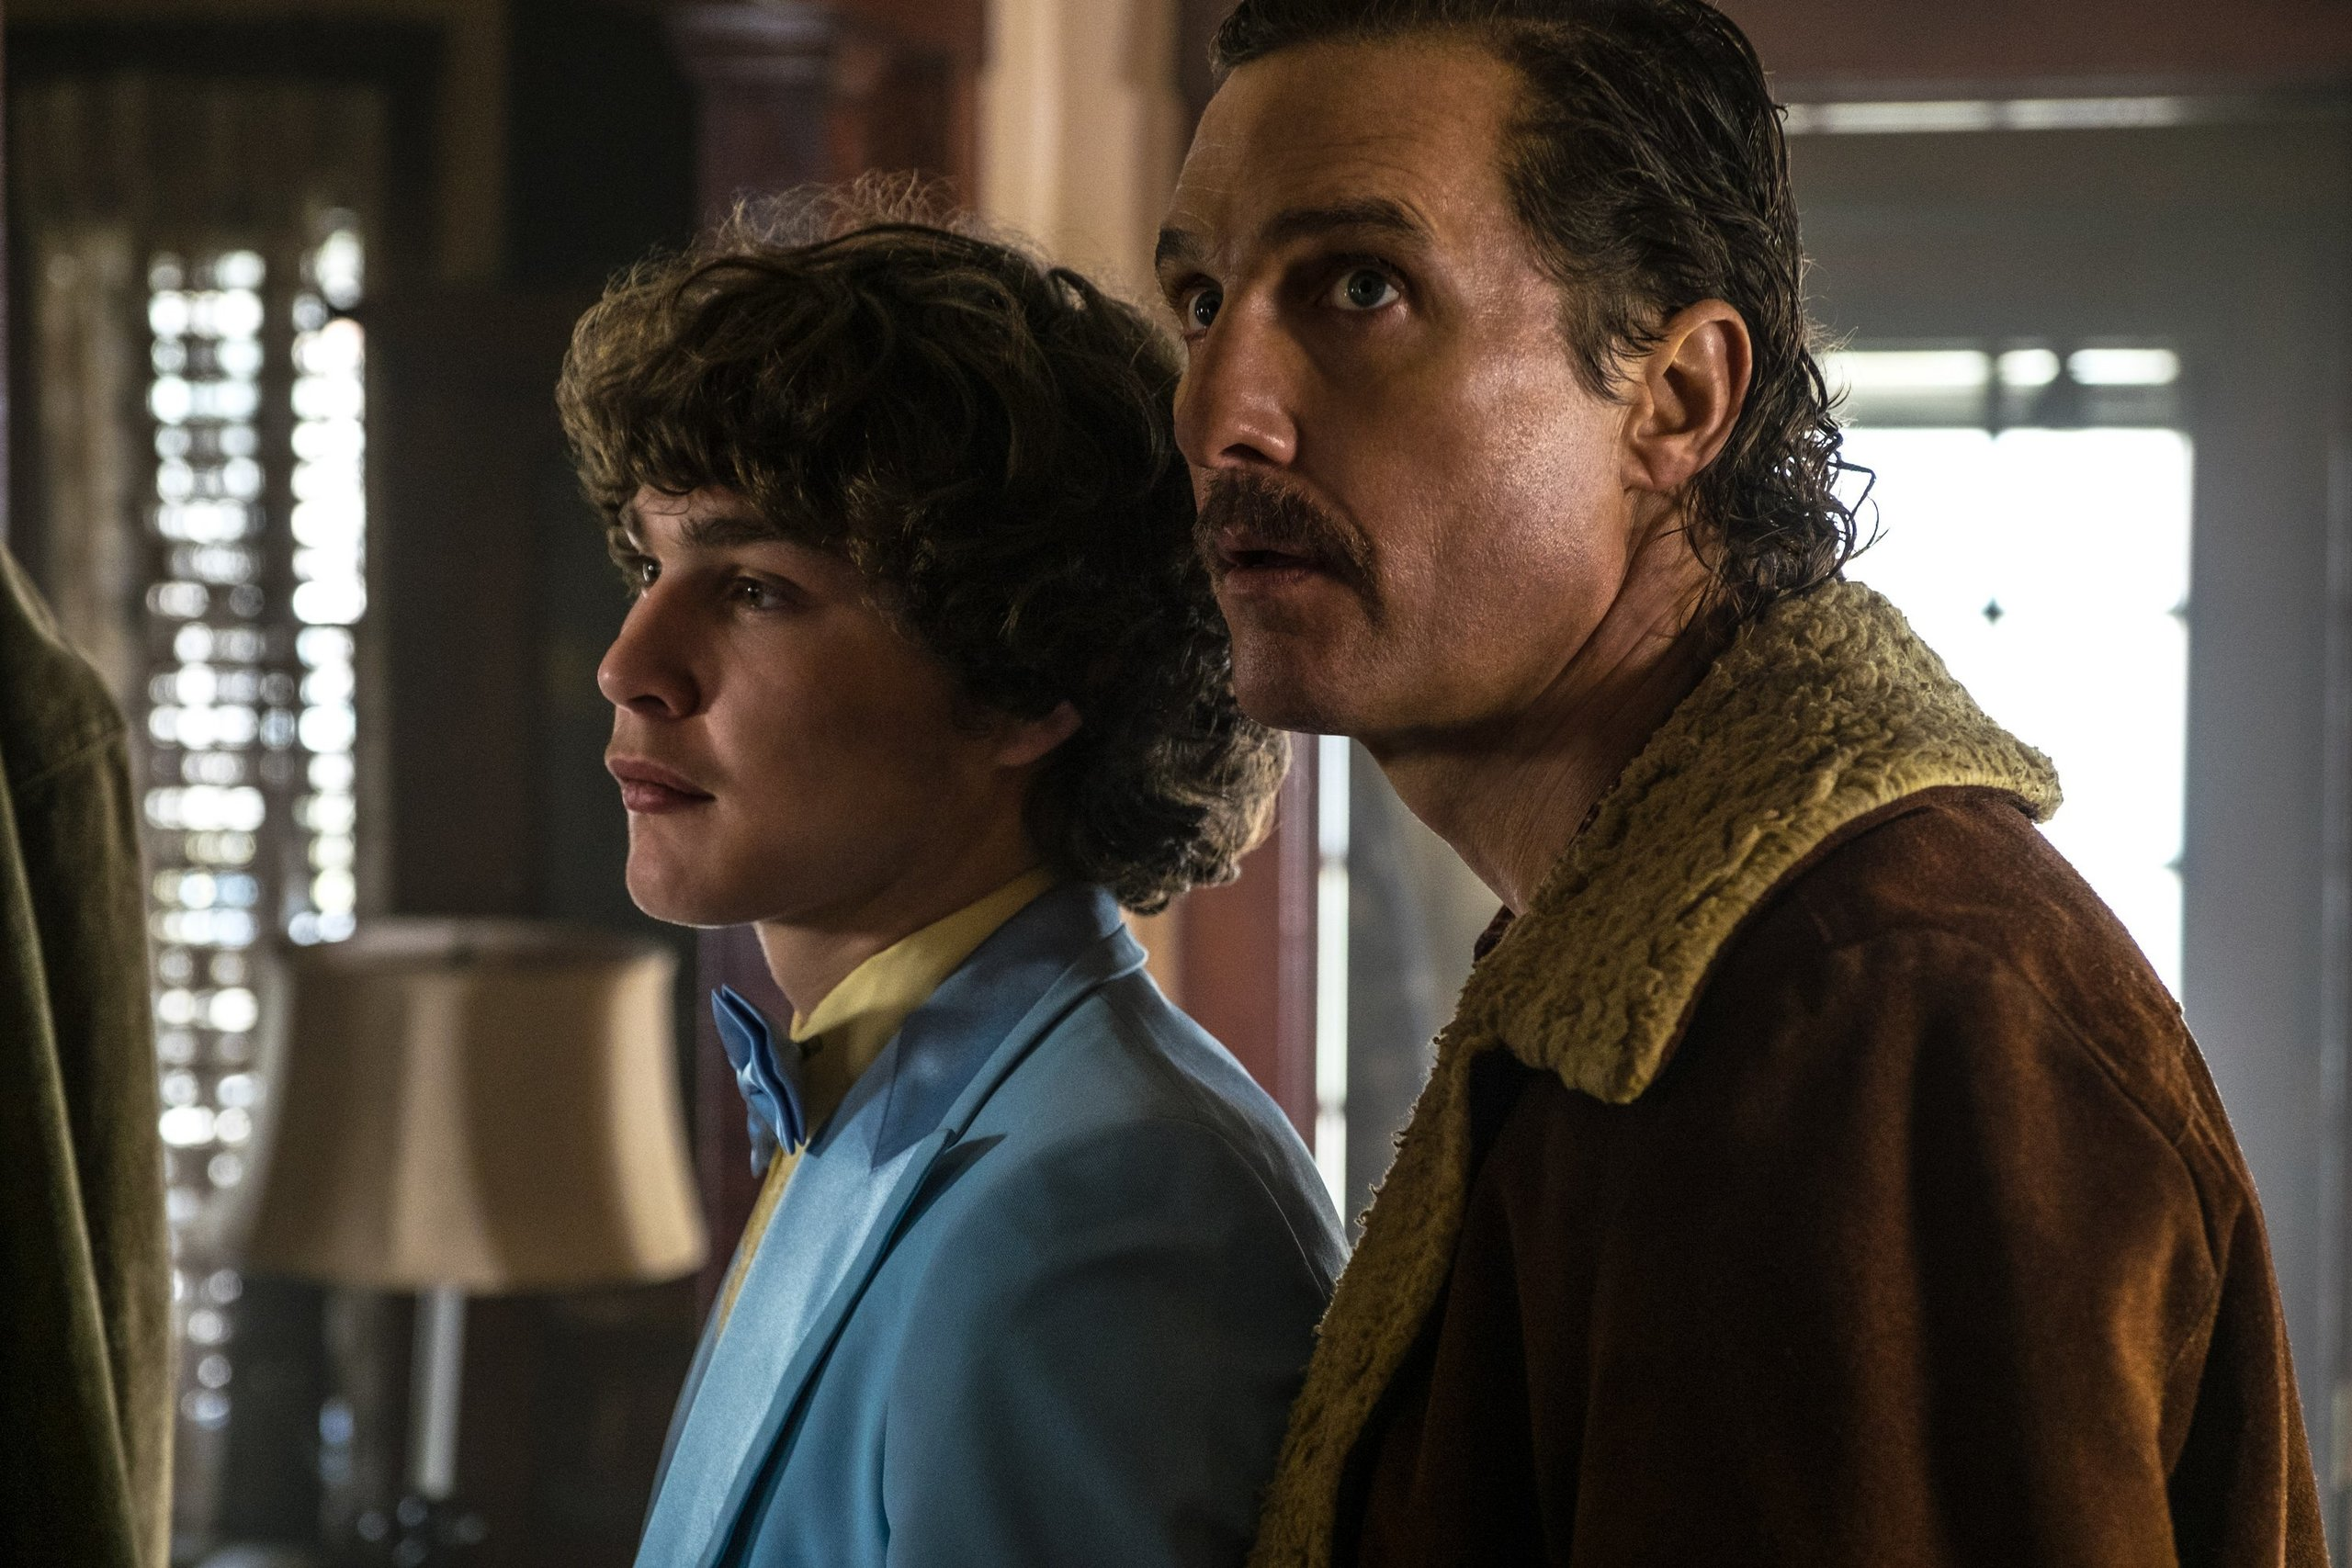 Matthew McConaughey stars in the White Boy Rick trailer the crime thriller adaptation of the true story of Ricky Wershe Jr a teenage FBI informant who